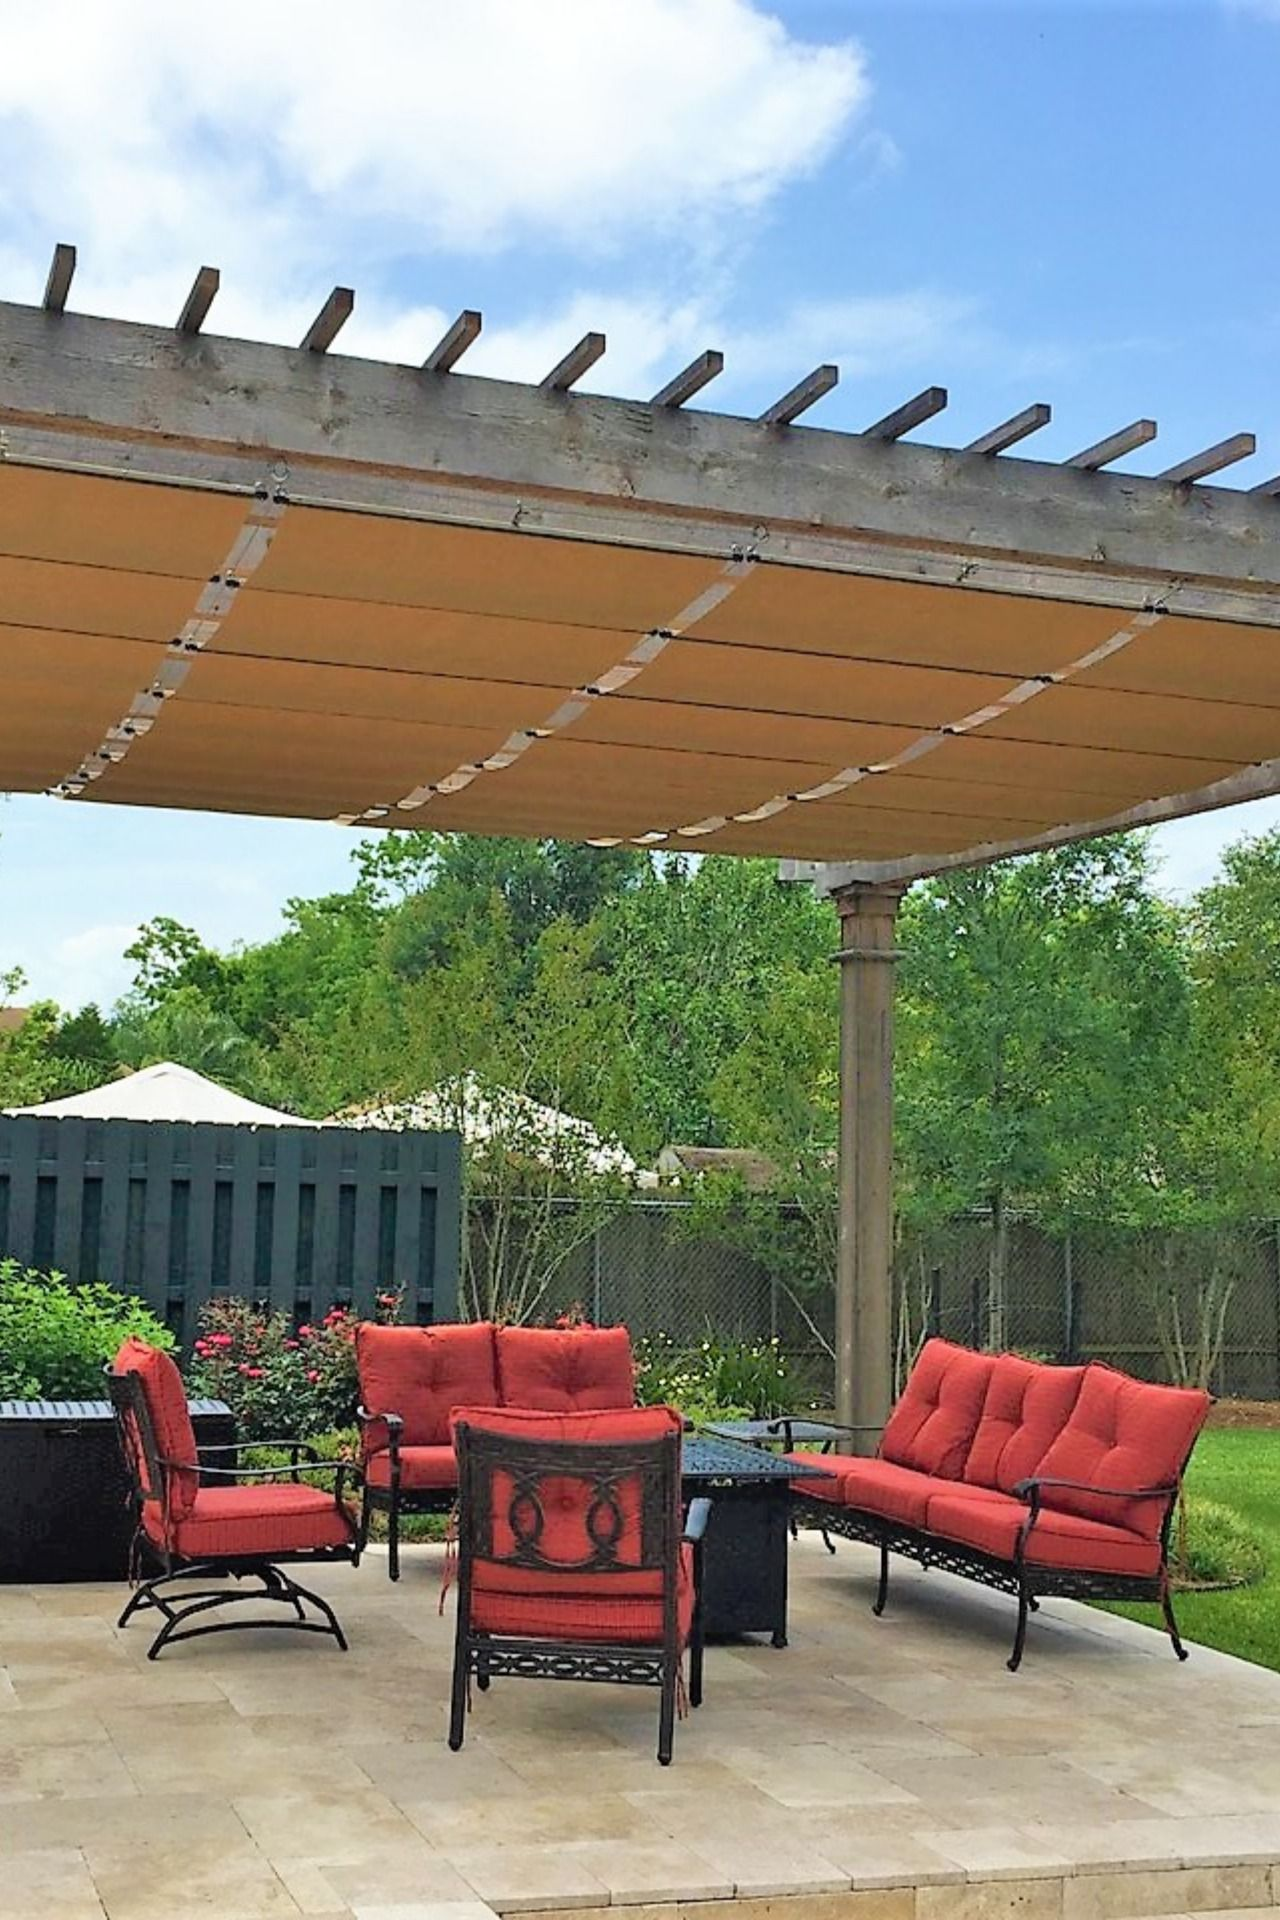 These Are Made From The Top Grade Sunbrella Marina Waterproof Fabrics With 100 S Of Available Colors And Patterns Pergola Shade Cover Pergola Beautiful Patios